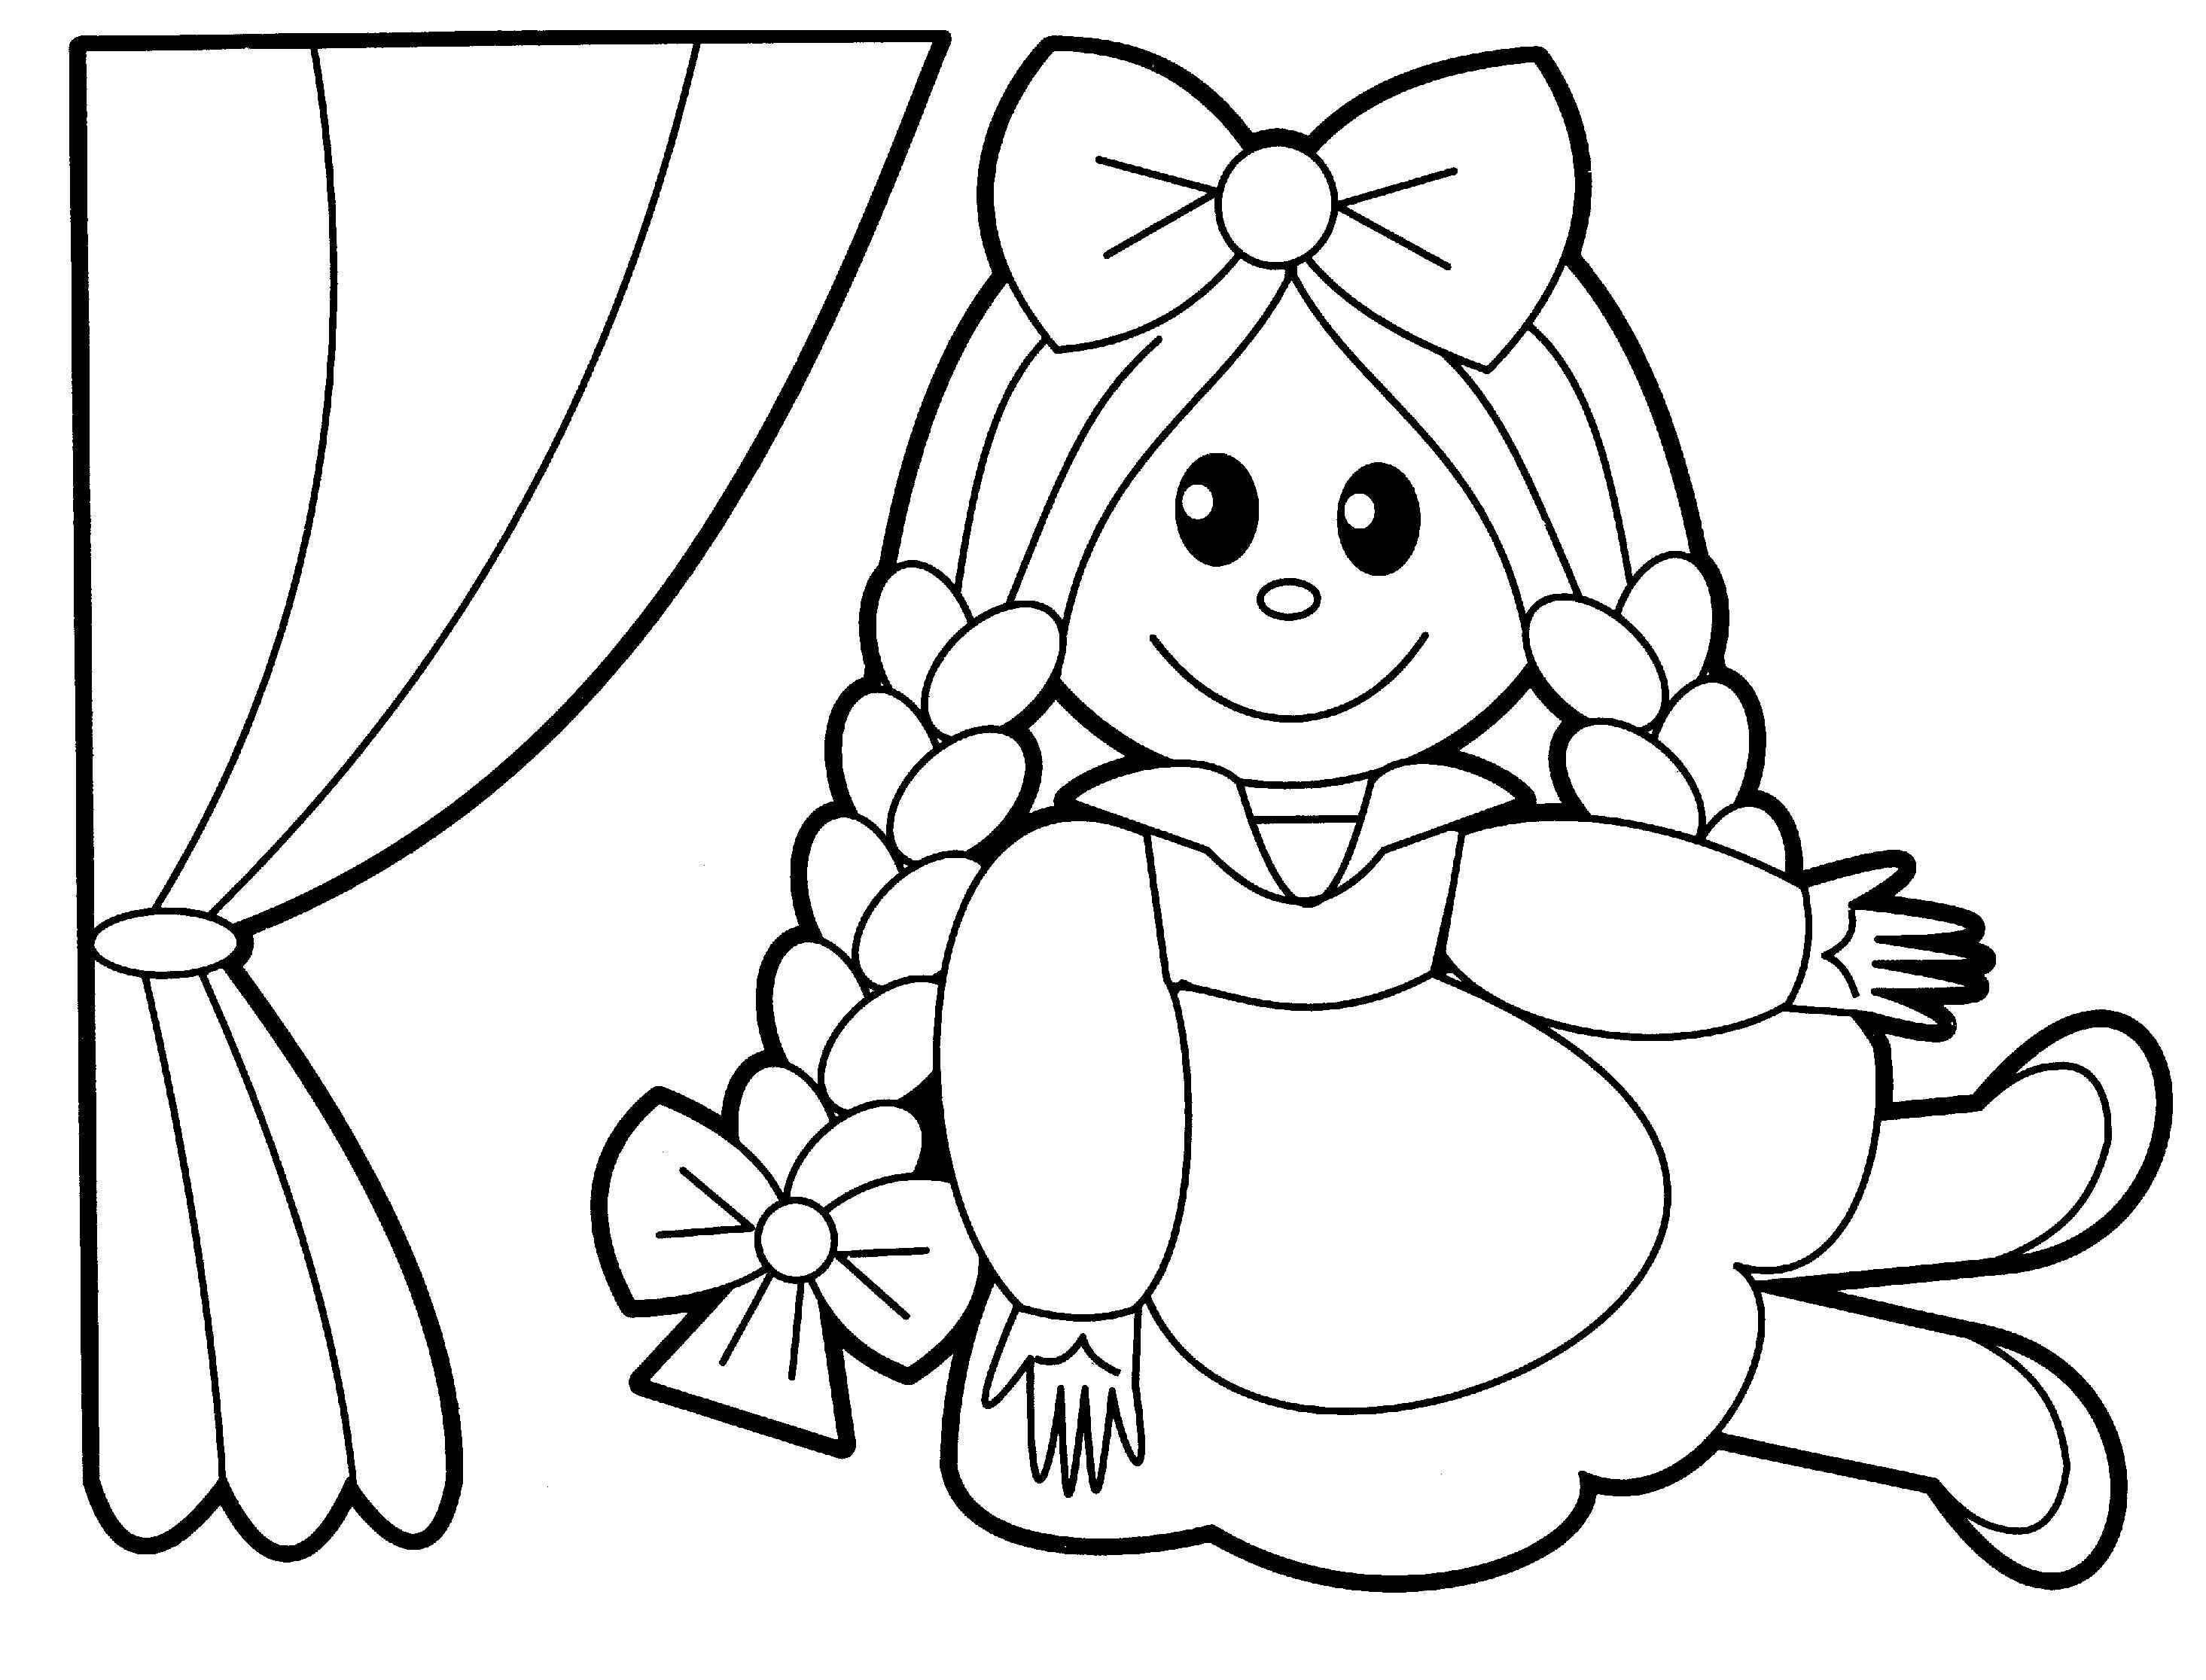 Baby Alive Coloring Pages Lovely Coloring Pages Baby Dolls Coloring Pictures Baby Dolls Toy Story Coloring Pages Toddler Coloring Book Elsa Coloring Pages